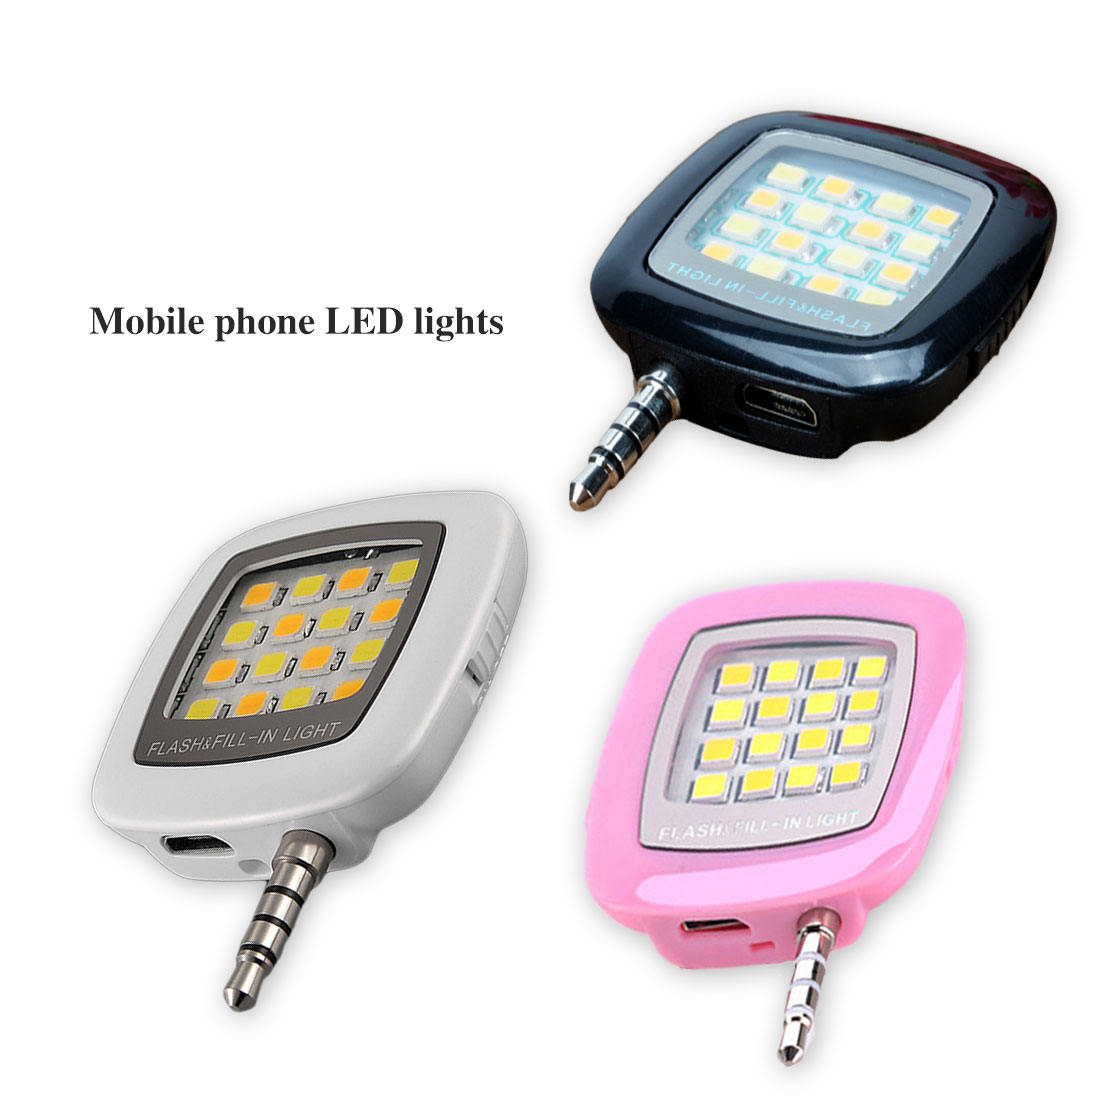 Etmakit Mobile Phone 16 LED Flash Light Adjustable Fill light For iPhone 6 Universal Android Phones Mini Selfie Sync Flashlight